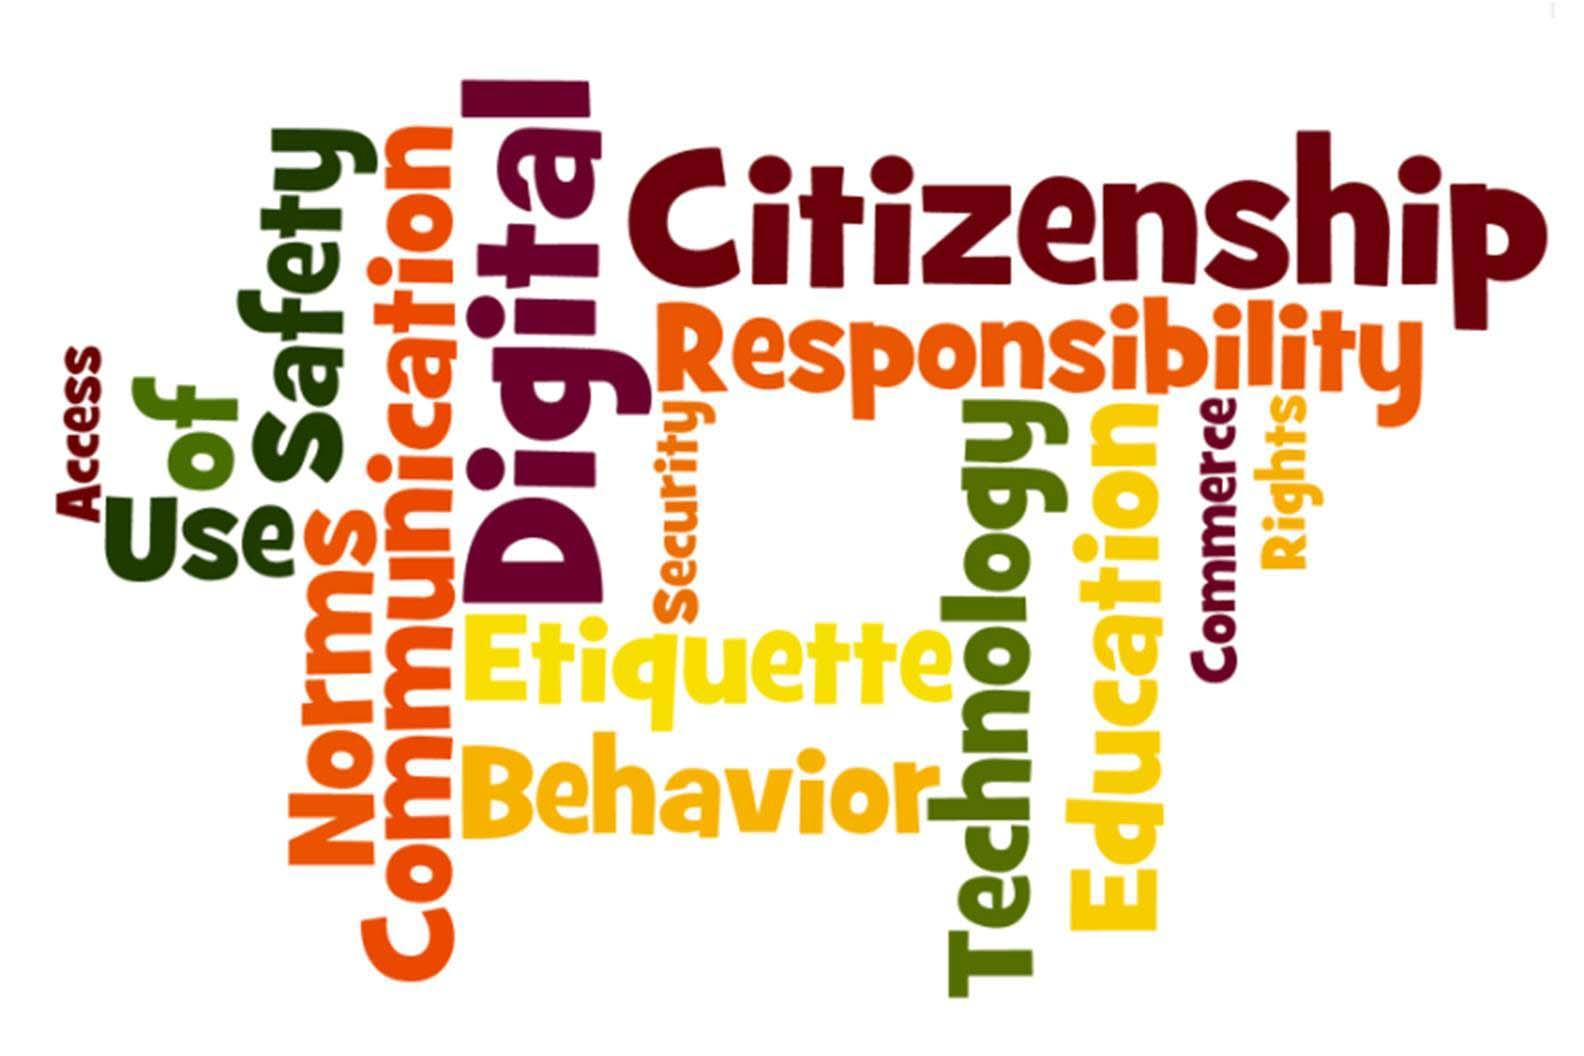 What to Teach Students About Digital Citizenship